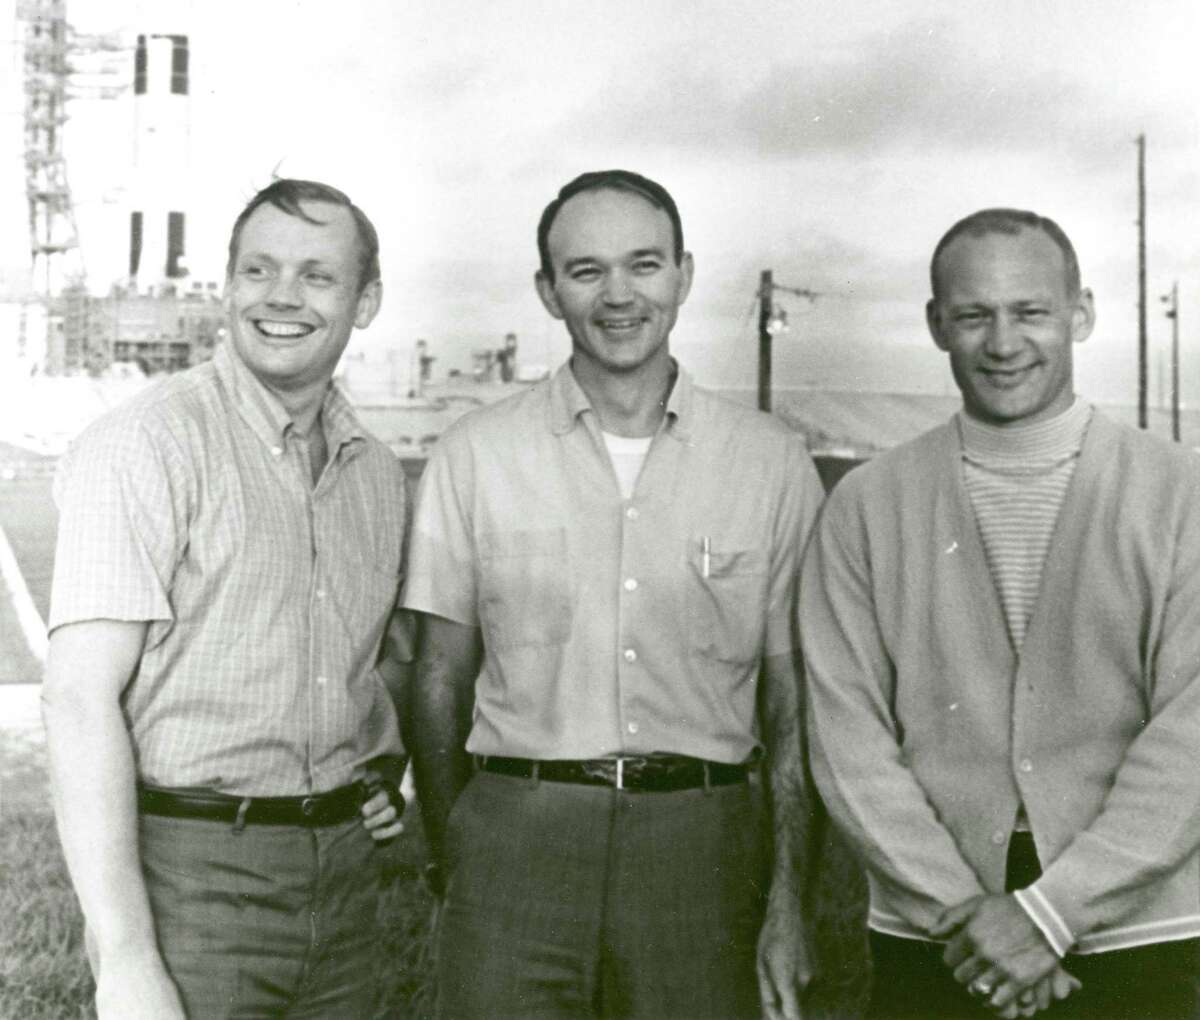 In this July 16,1969, NASA's Apollo 11 flight crew - from left, Neil Armstrong, commander; Michael Collins, command module pilot; and Buzz Aldrin, lunar module pilot - stand near the Apollo/Saturn V space vehicle that would eventually carry them into space.